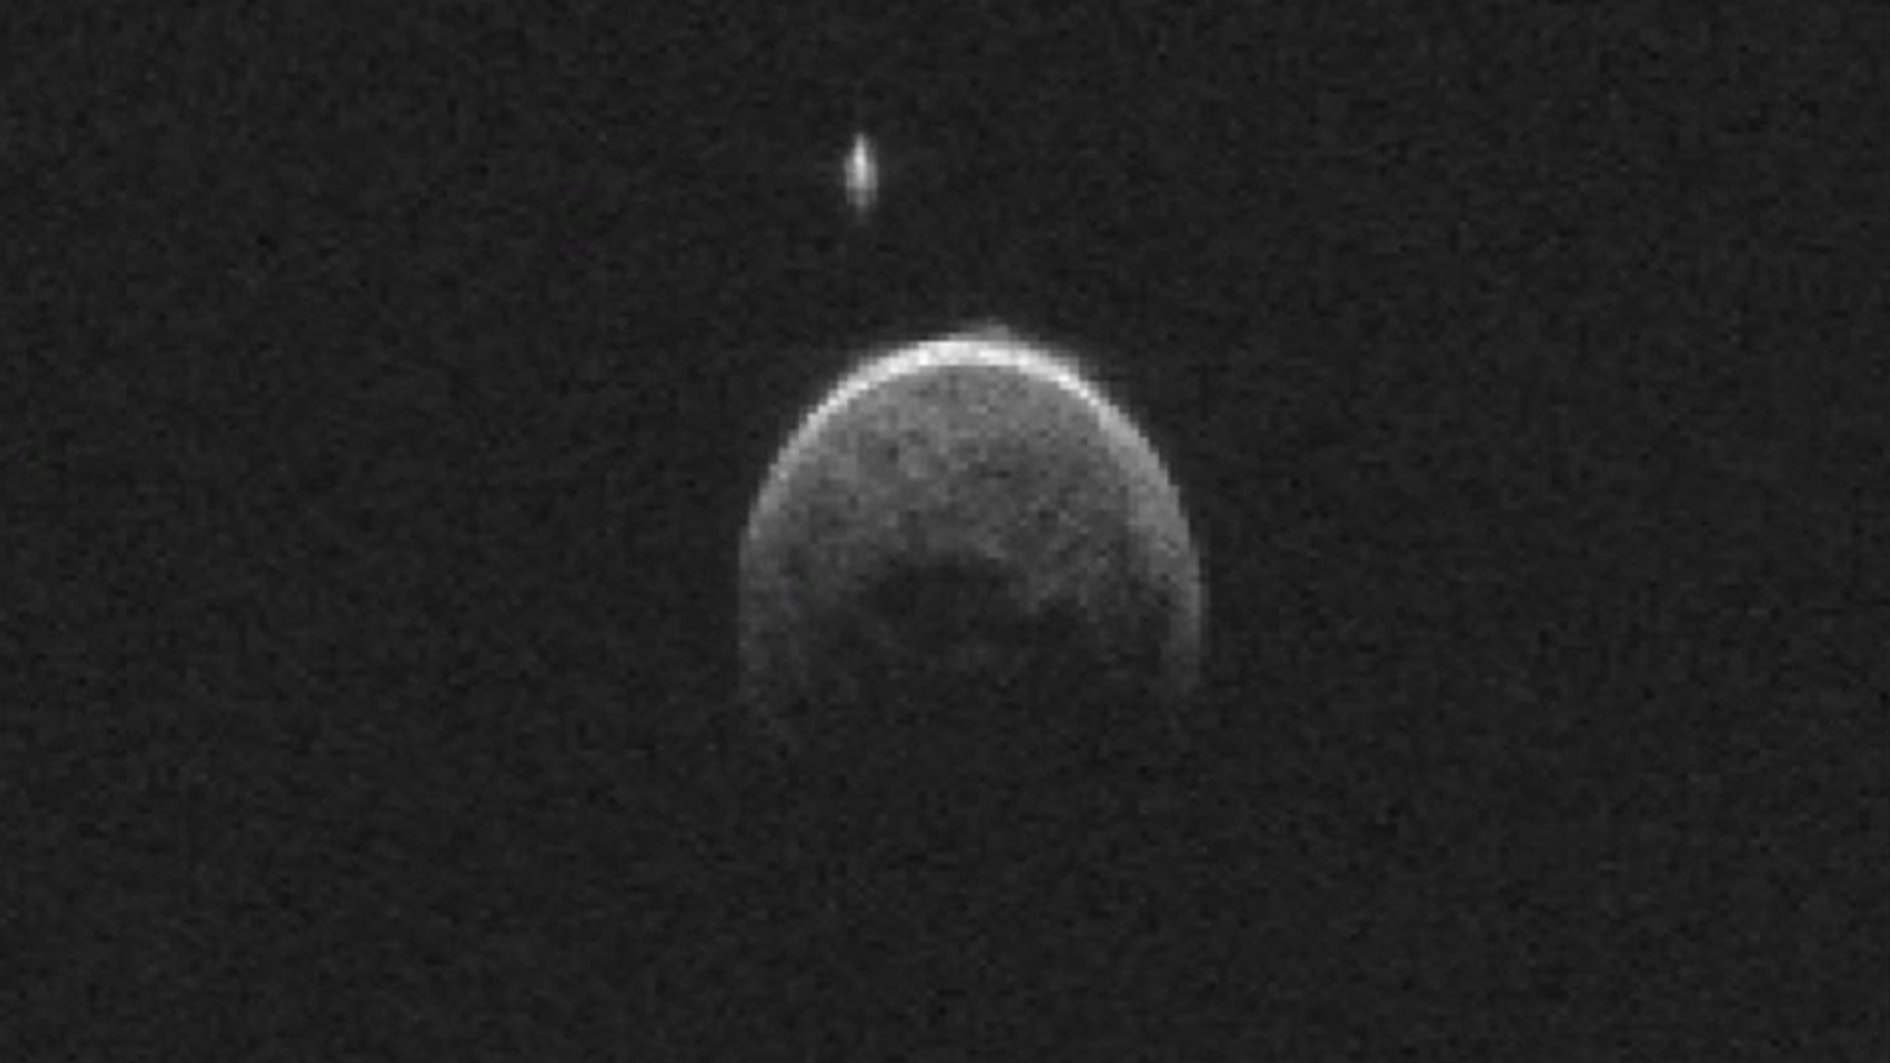 moon asteroid with its own - photo #2